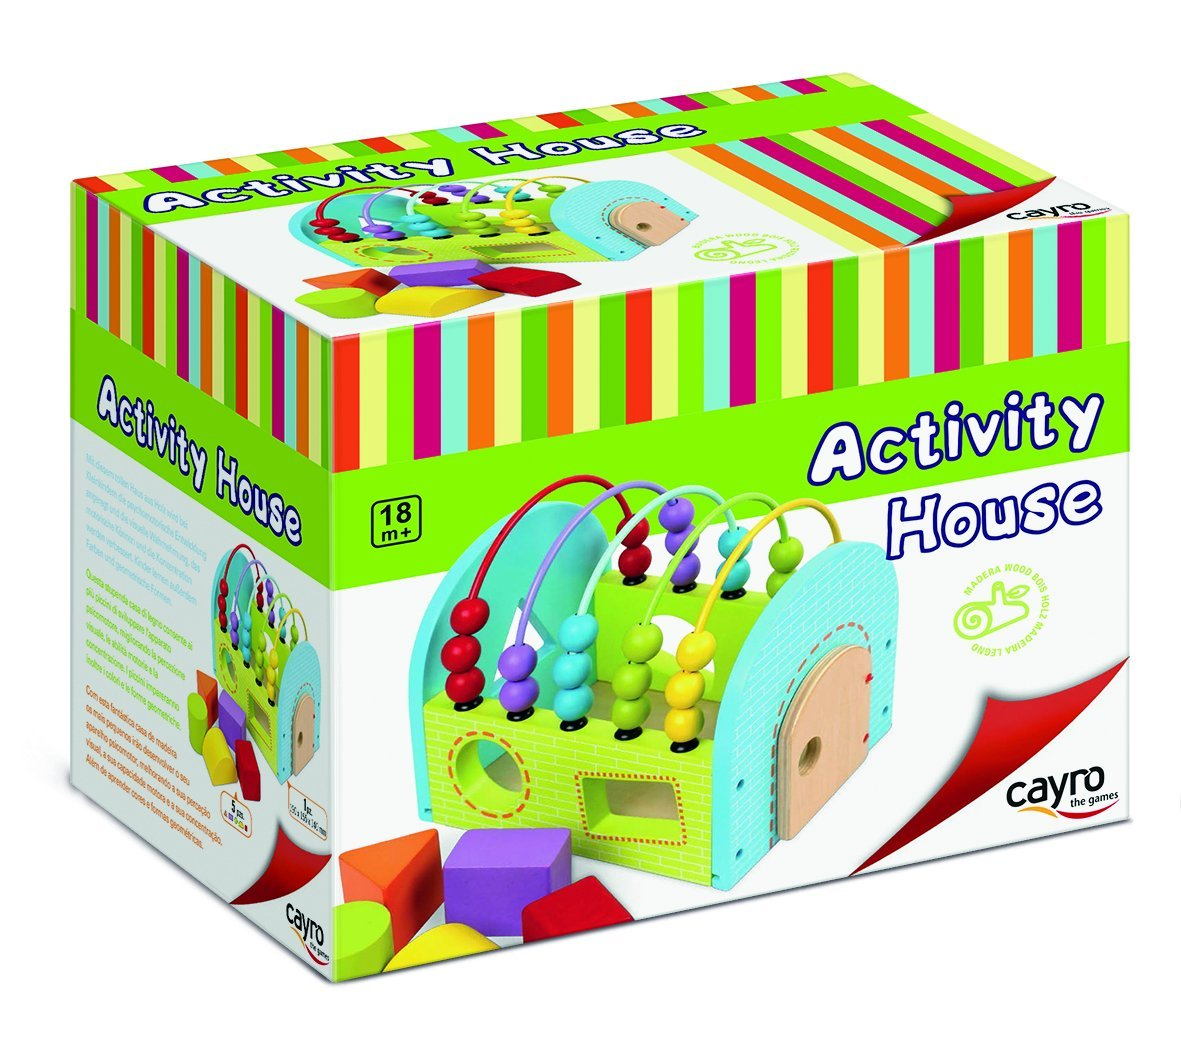 Juego Activity House CAYRO 8104